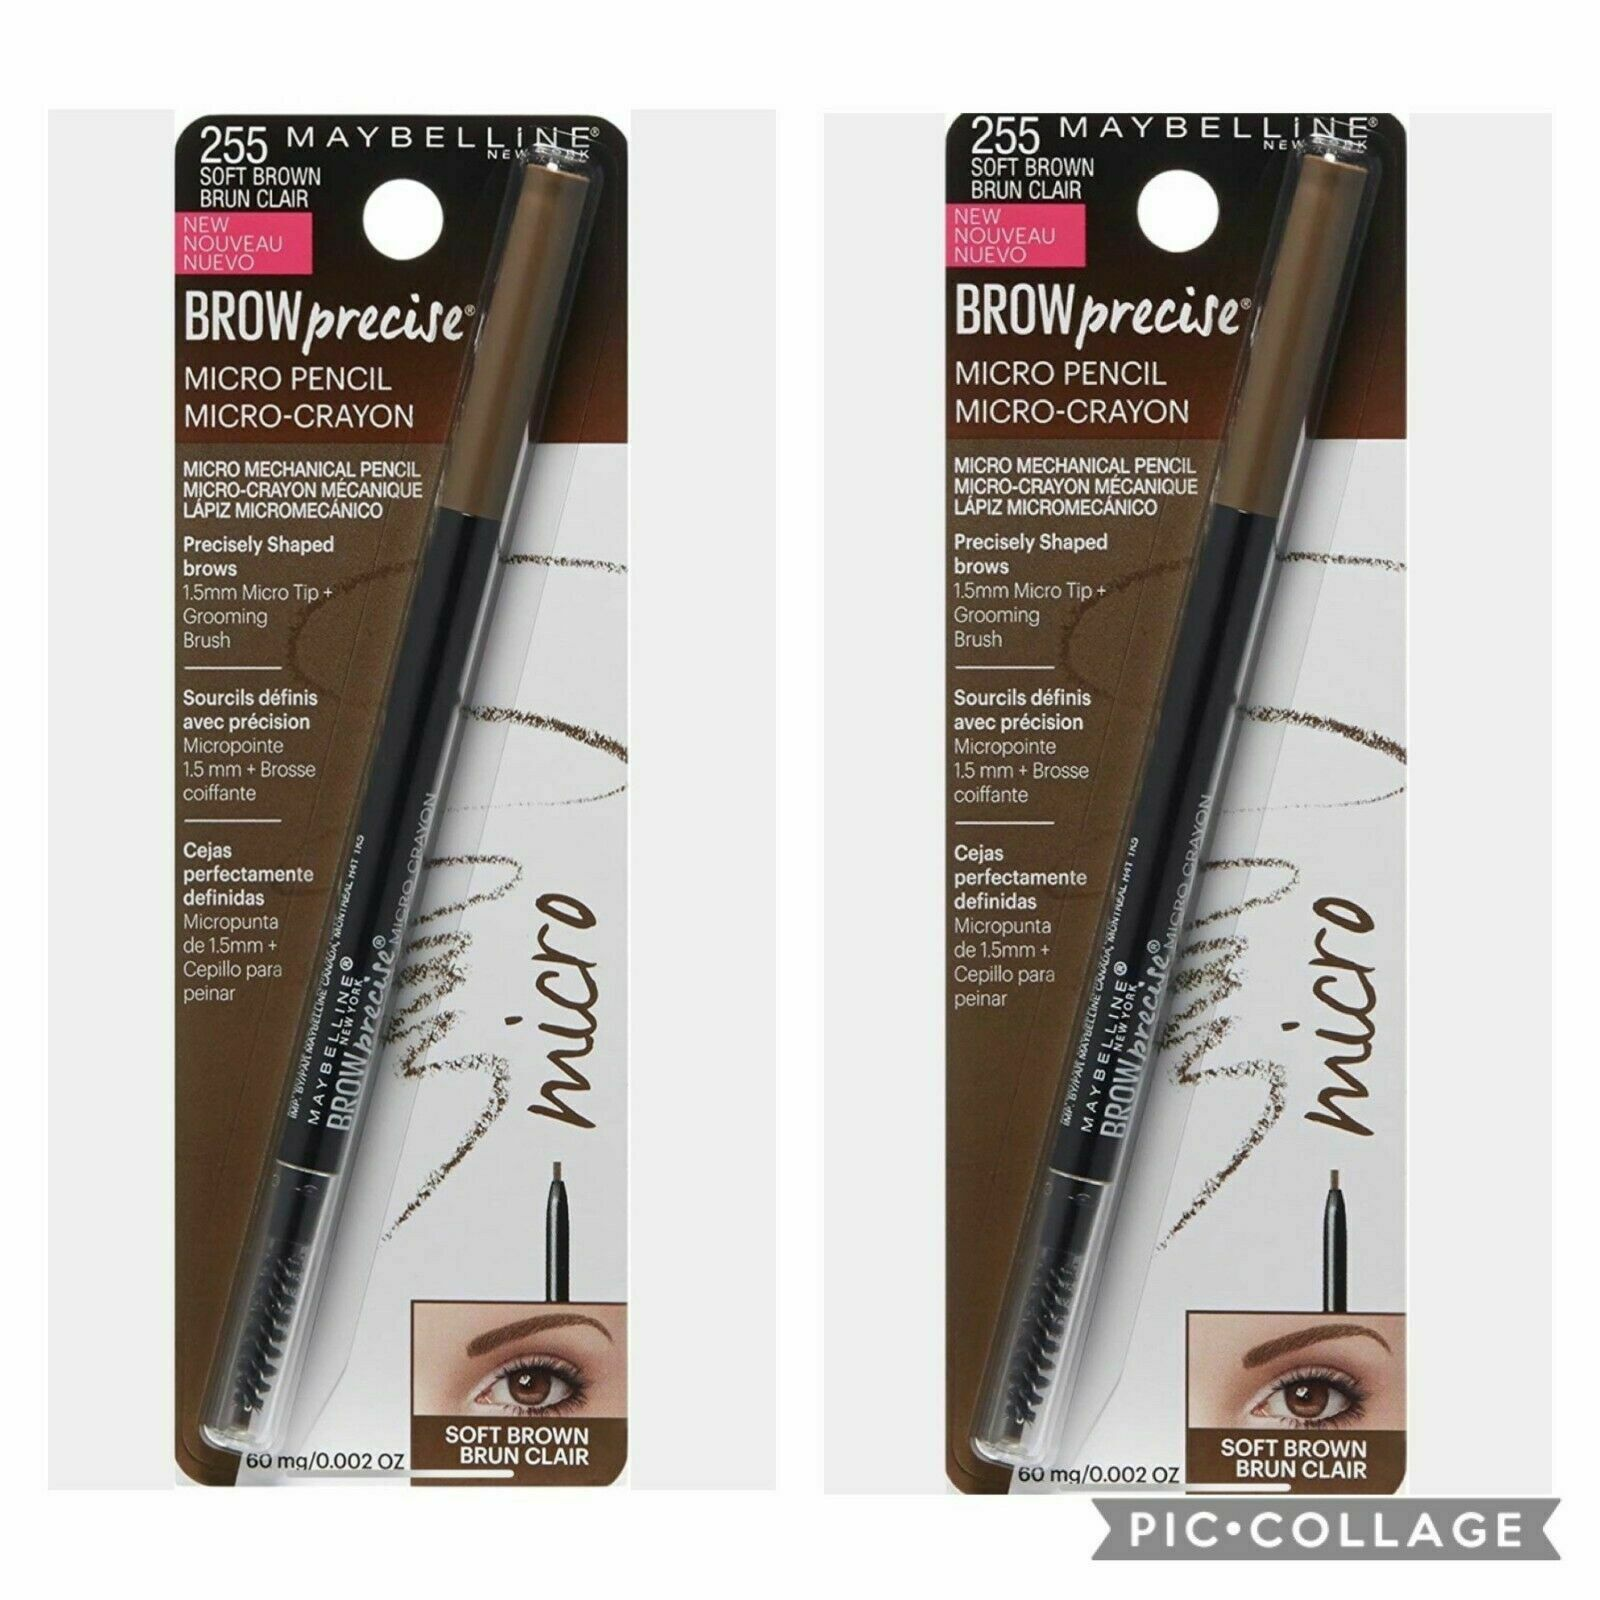 Maybelline New York Brow Precise Micro Pencil, Soft Brown, 0